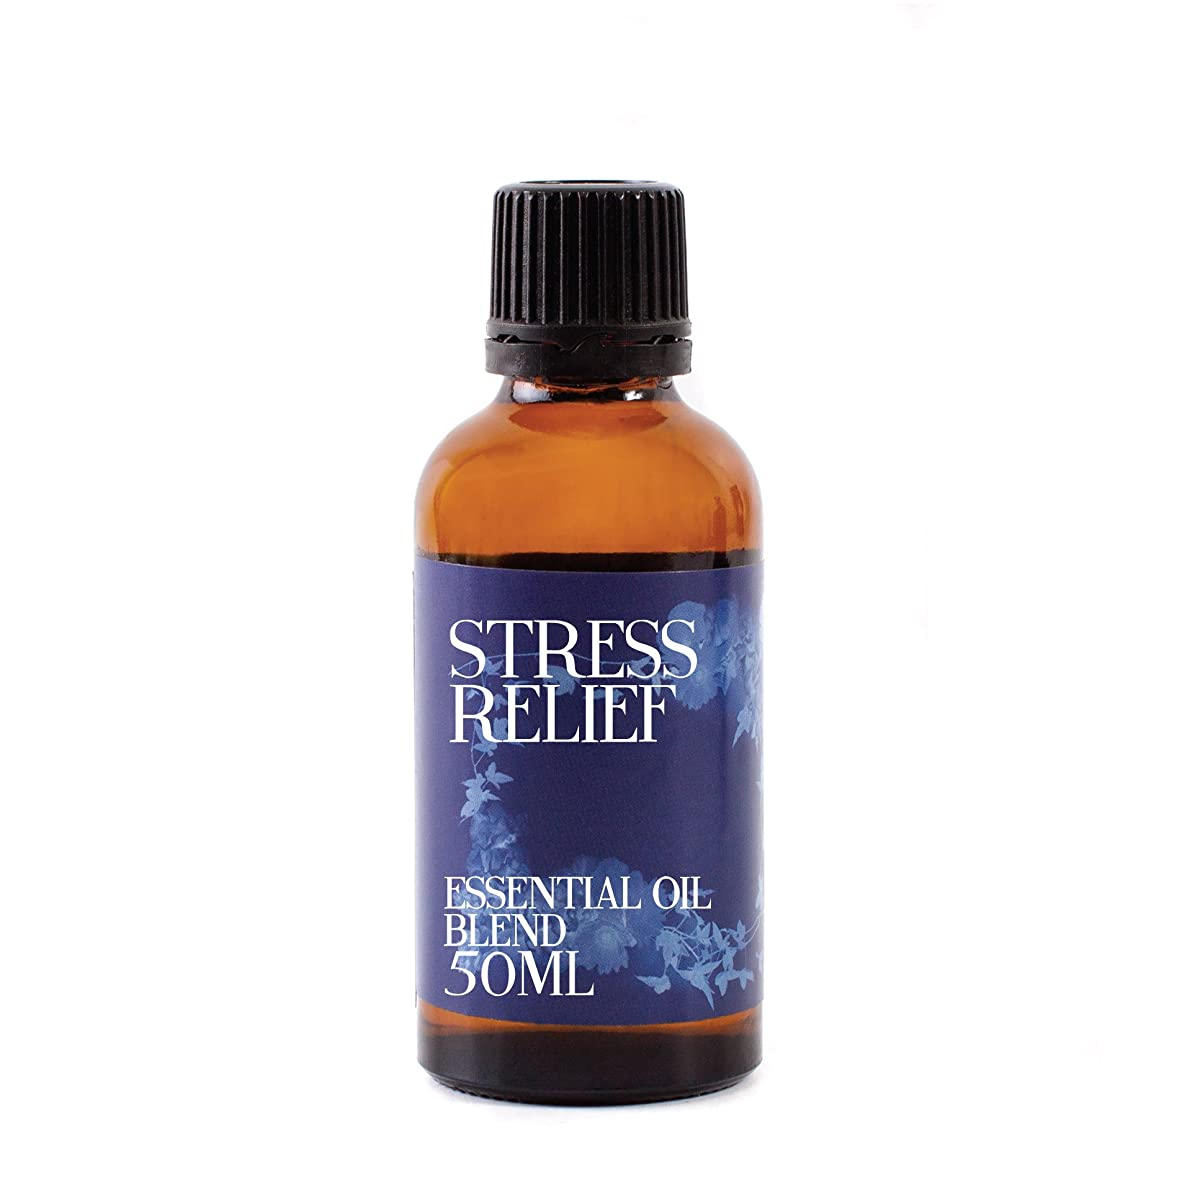 アクティブライラックオーストラリア人Mystix London | Stress Relief Essential Oil Blend - 50ml - 100% Pure